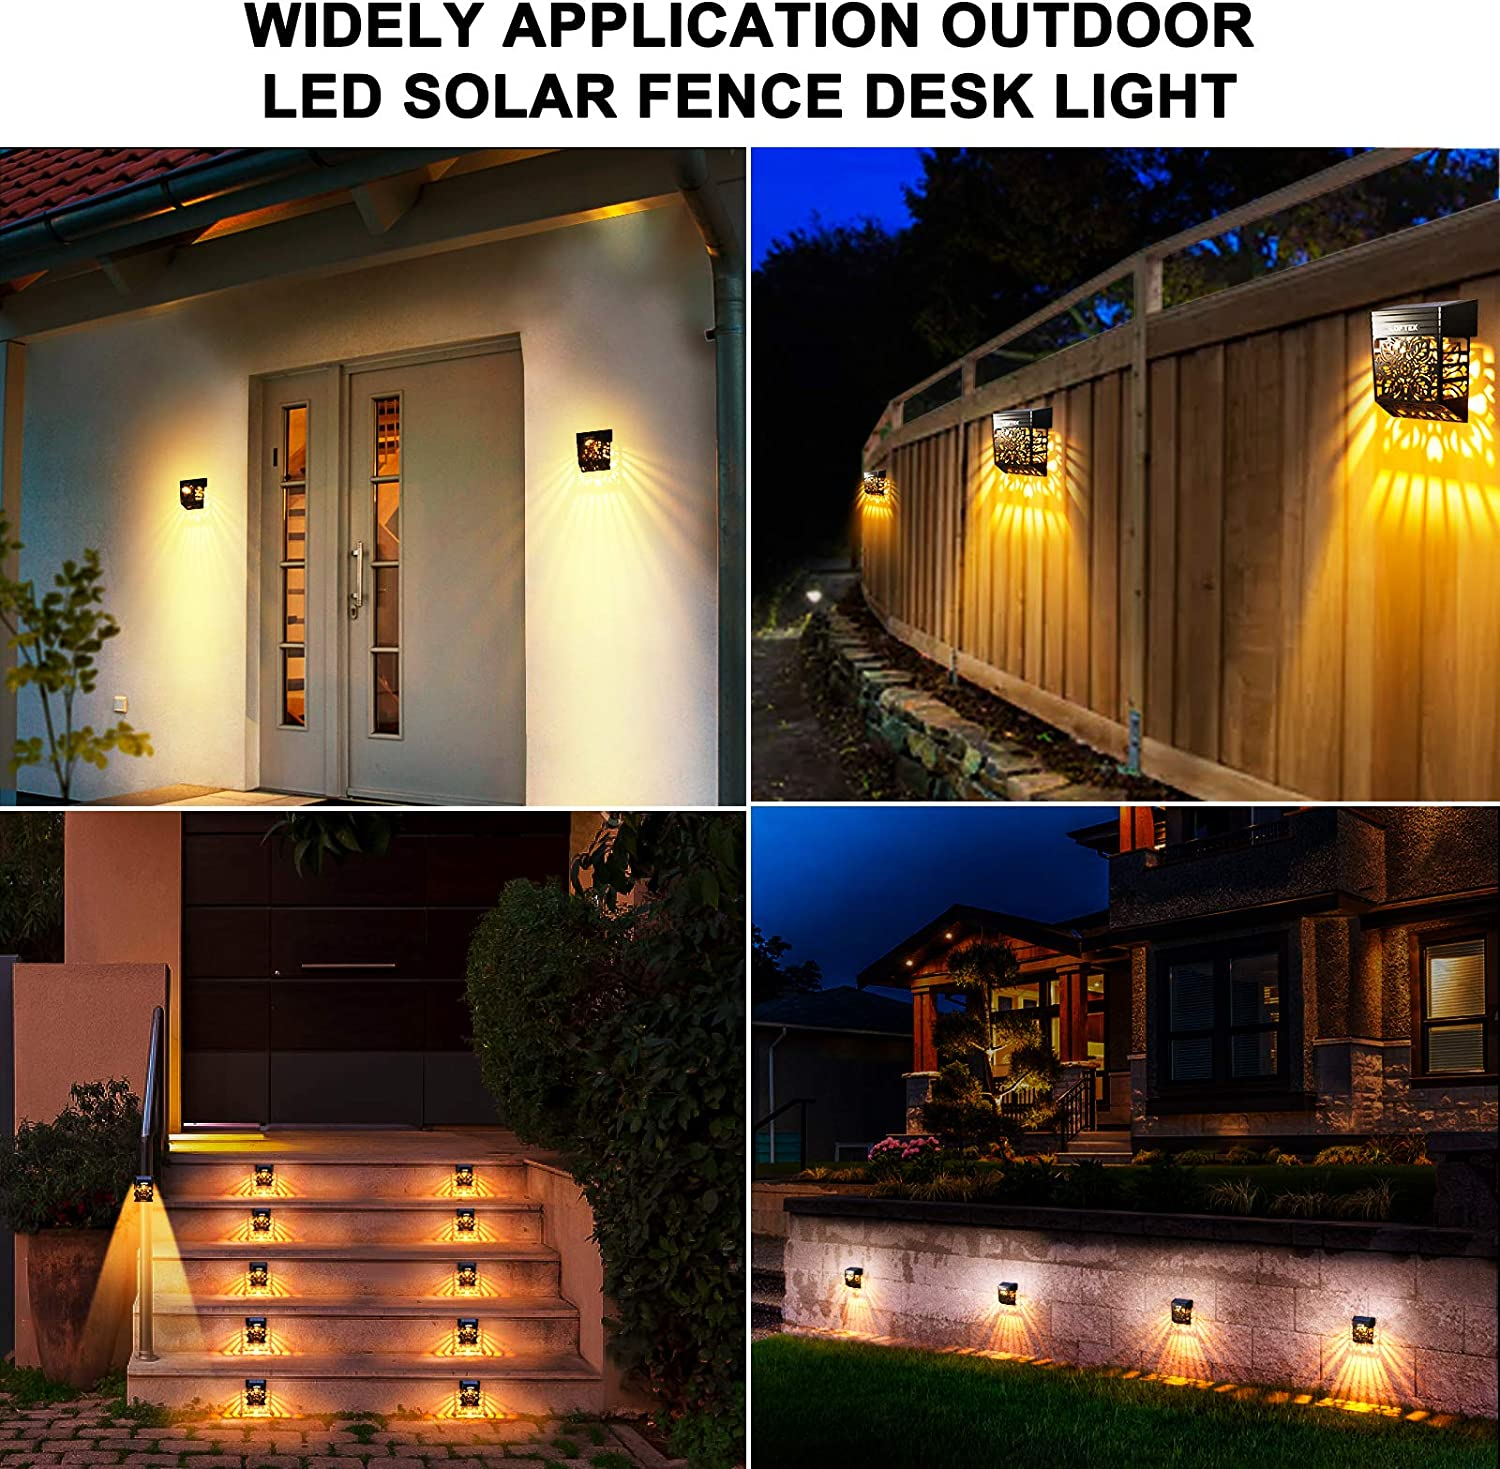 LOFTEK Solar Fence Lights Outdoor Path Stair Post Solar Wall Deck Lights Led Garden Decorative Lighting Waterproof Automatic Solar Patio Lamps for Front Door Pool 8 Pack Warm White Backyard